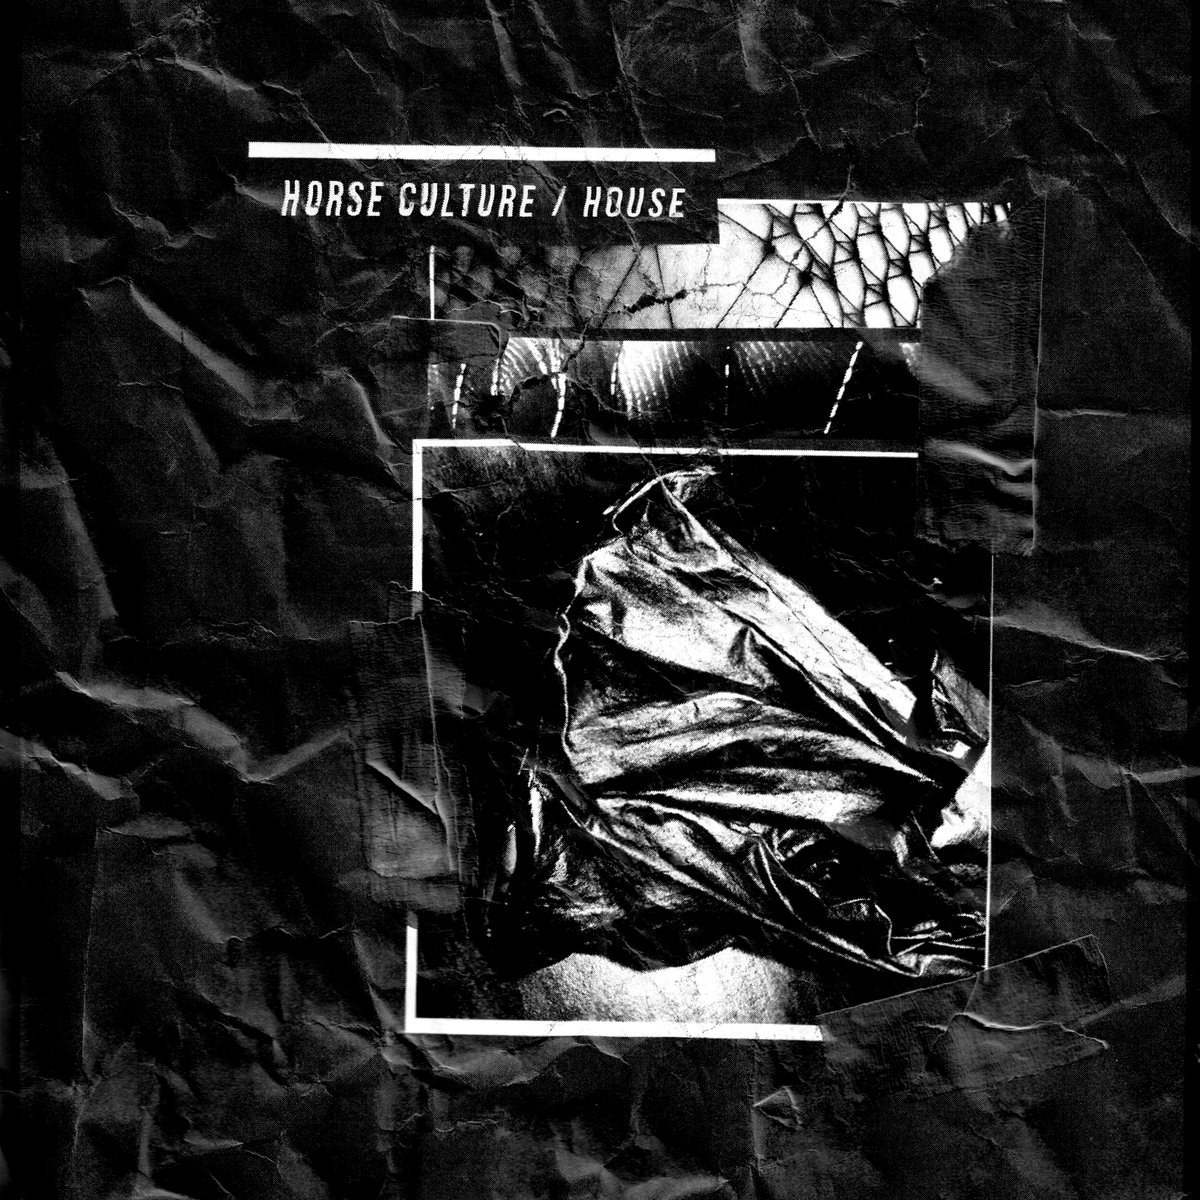 Horse Culture house cover art